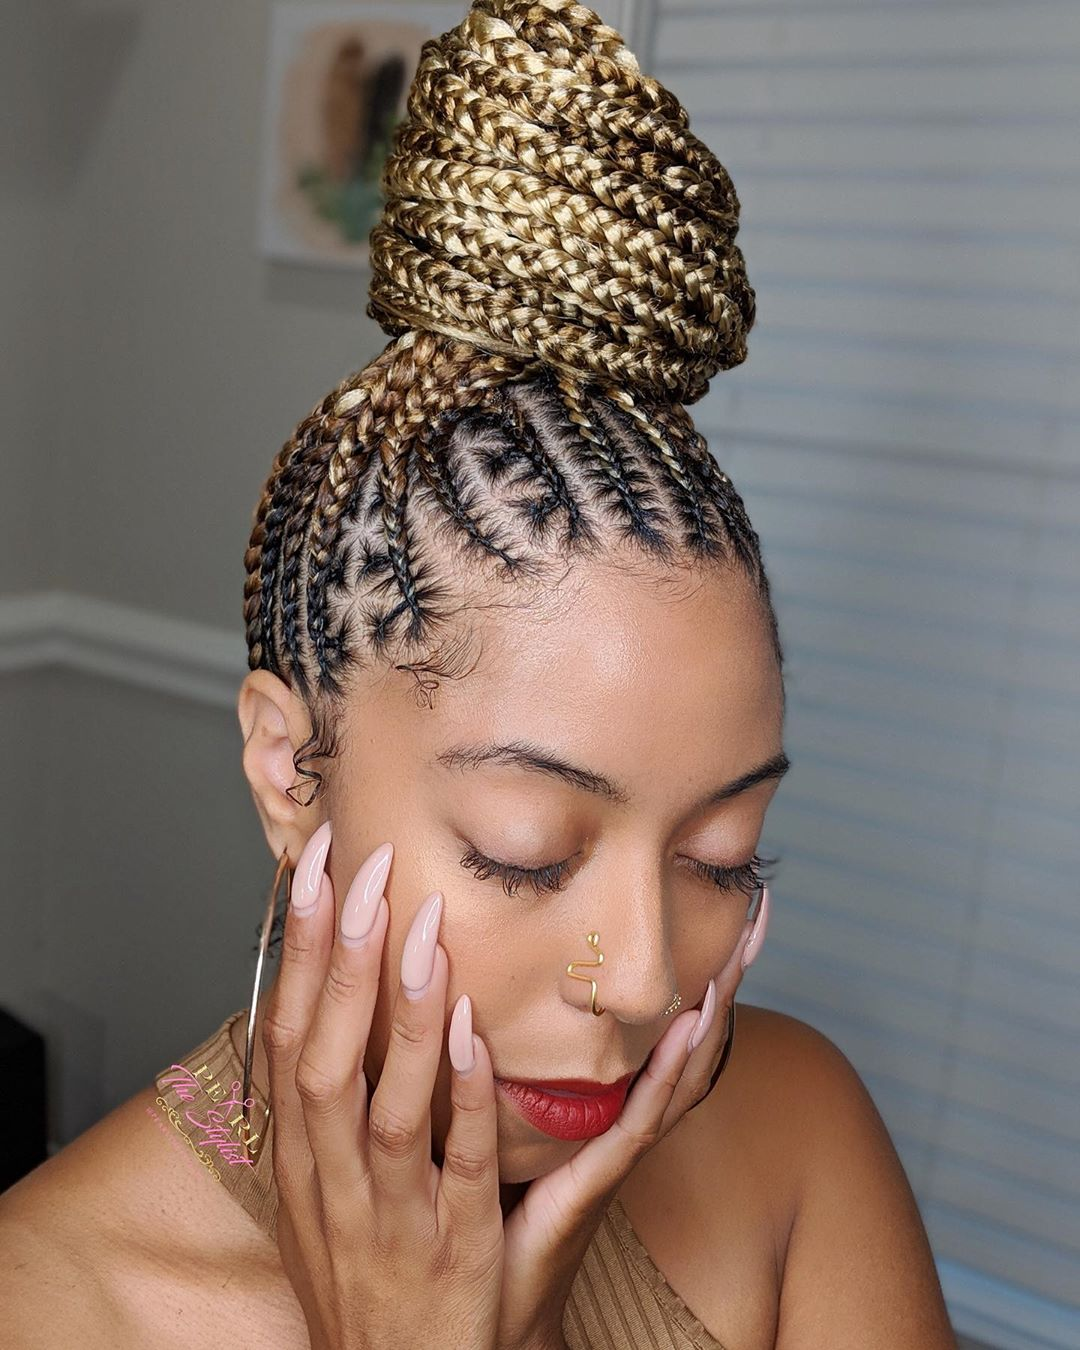 Cute Braided Hairstyles 2019 : Unique Styles to Make You Stand Out     Zaineey's Blog